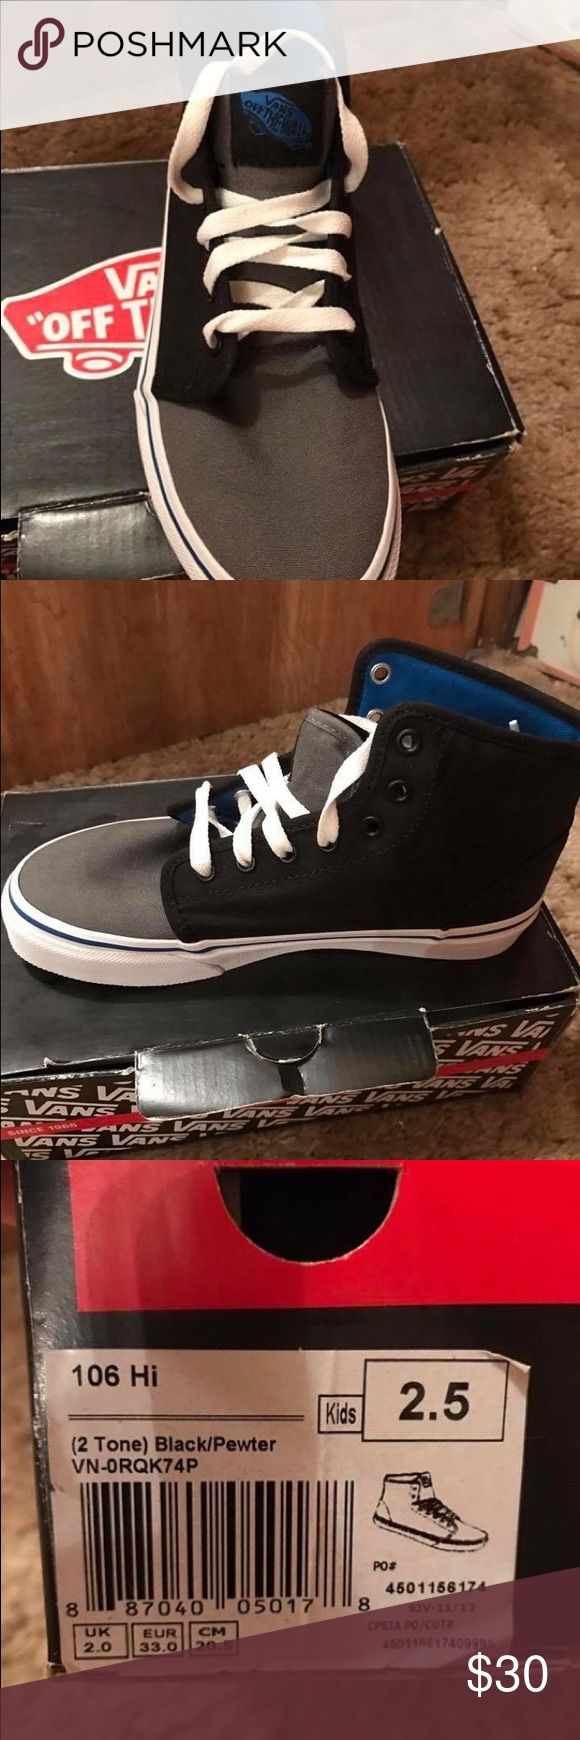 Boys vans size 2.5 new never worn Boys vans high tops black, blue and white size 2.5 Vans Shoes Sneakers